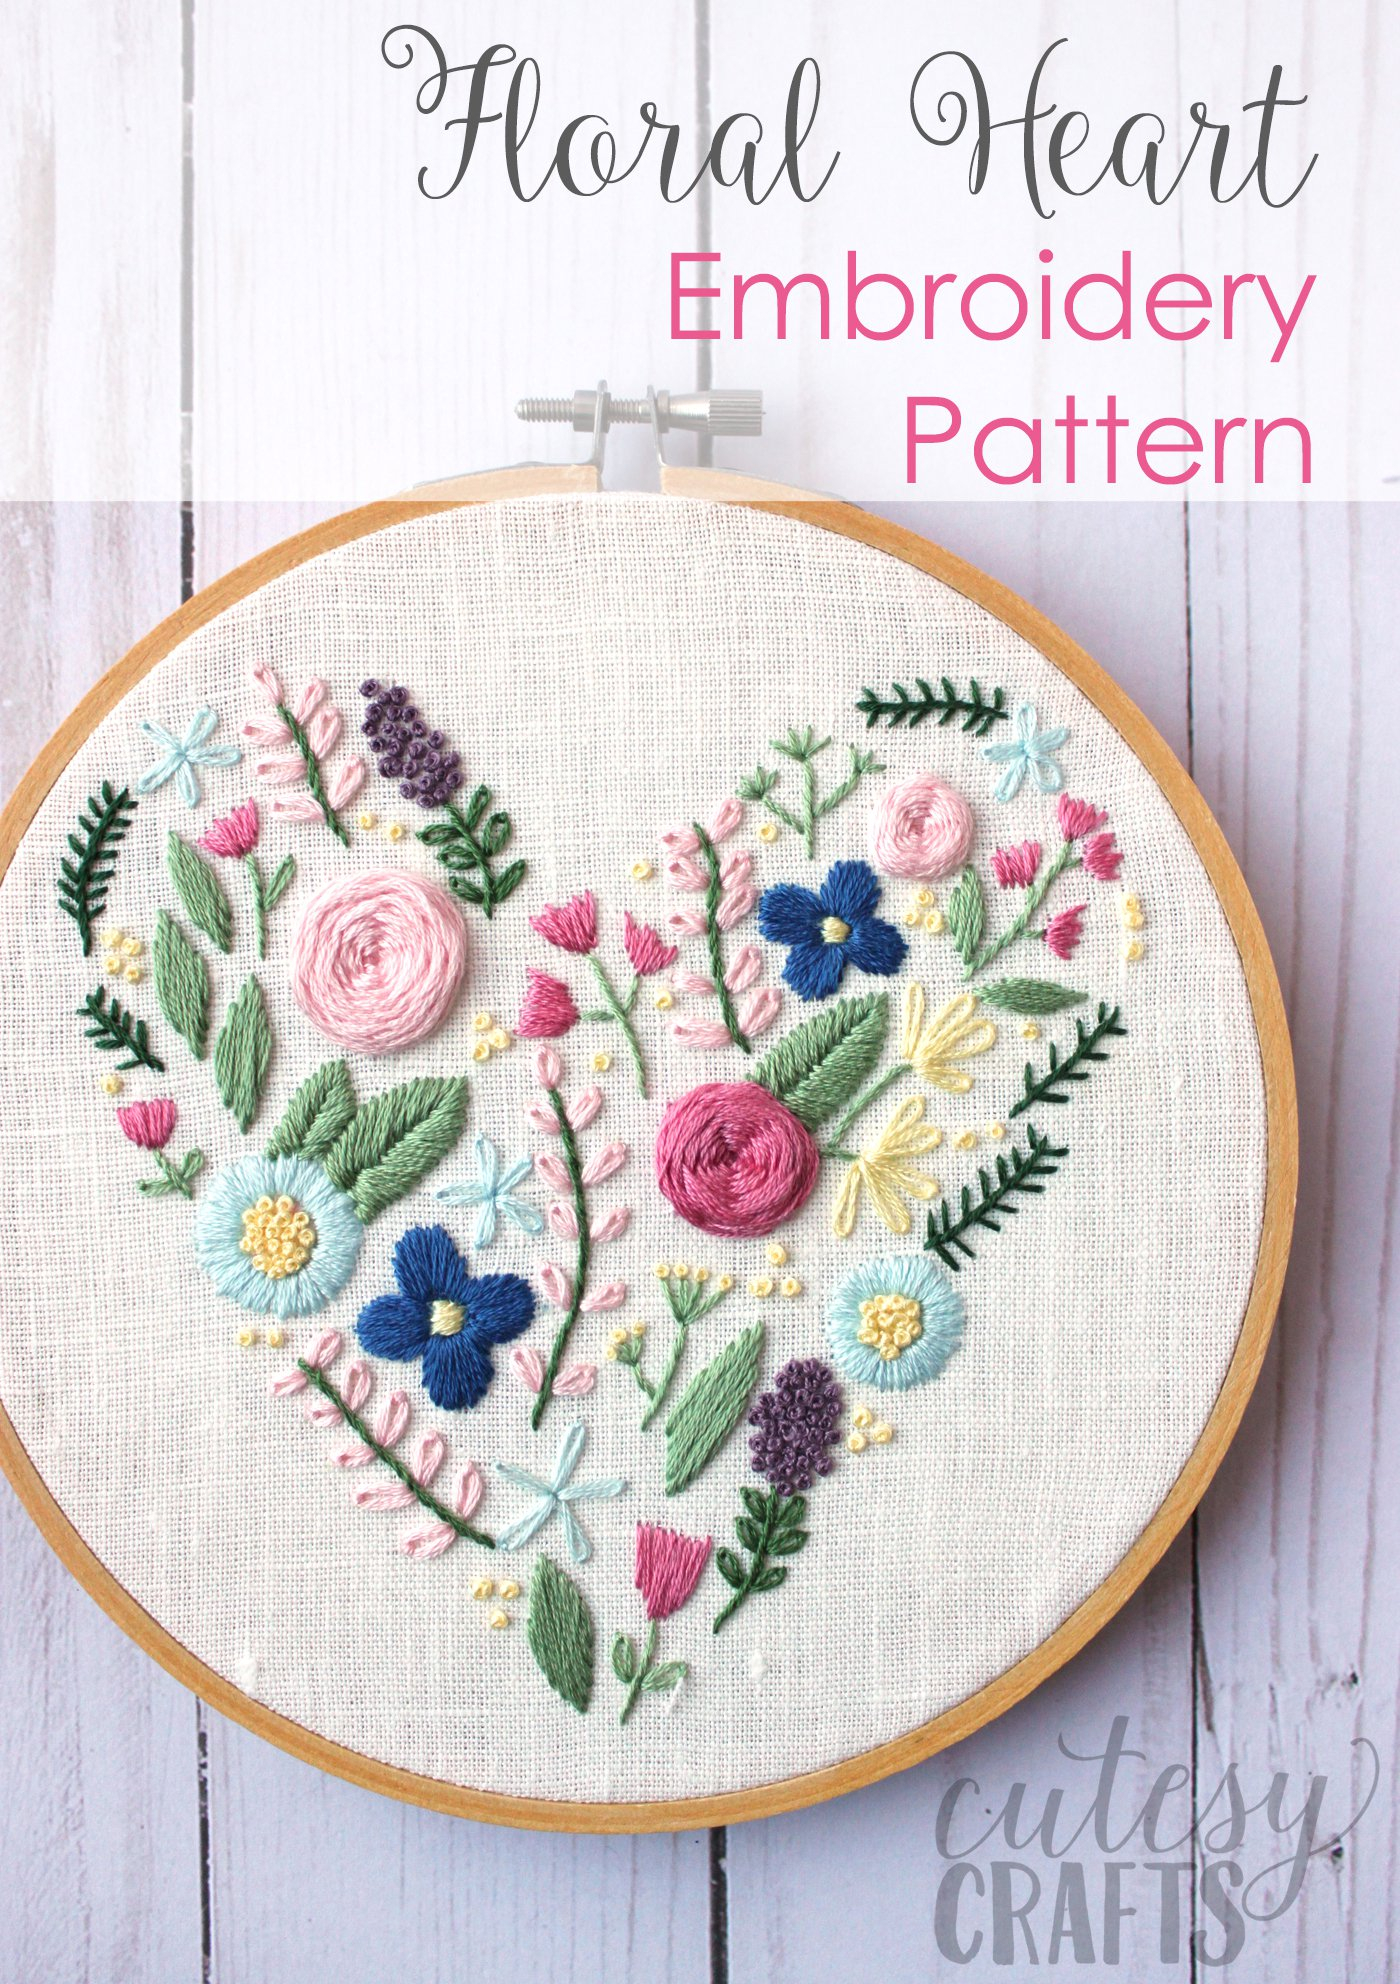 How To Read Embroidery Patterns Floral Heart Hand Embroidery Pattern The Polka Dot Chair